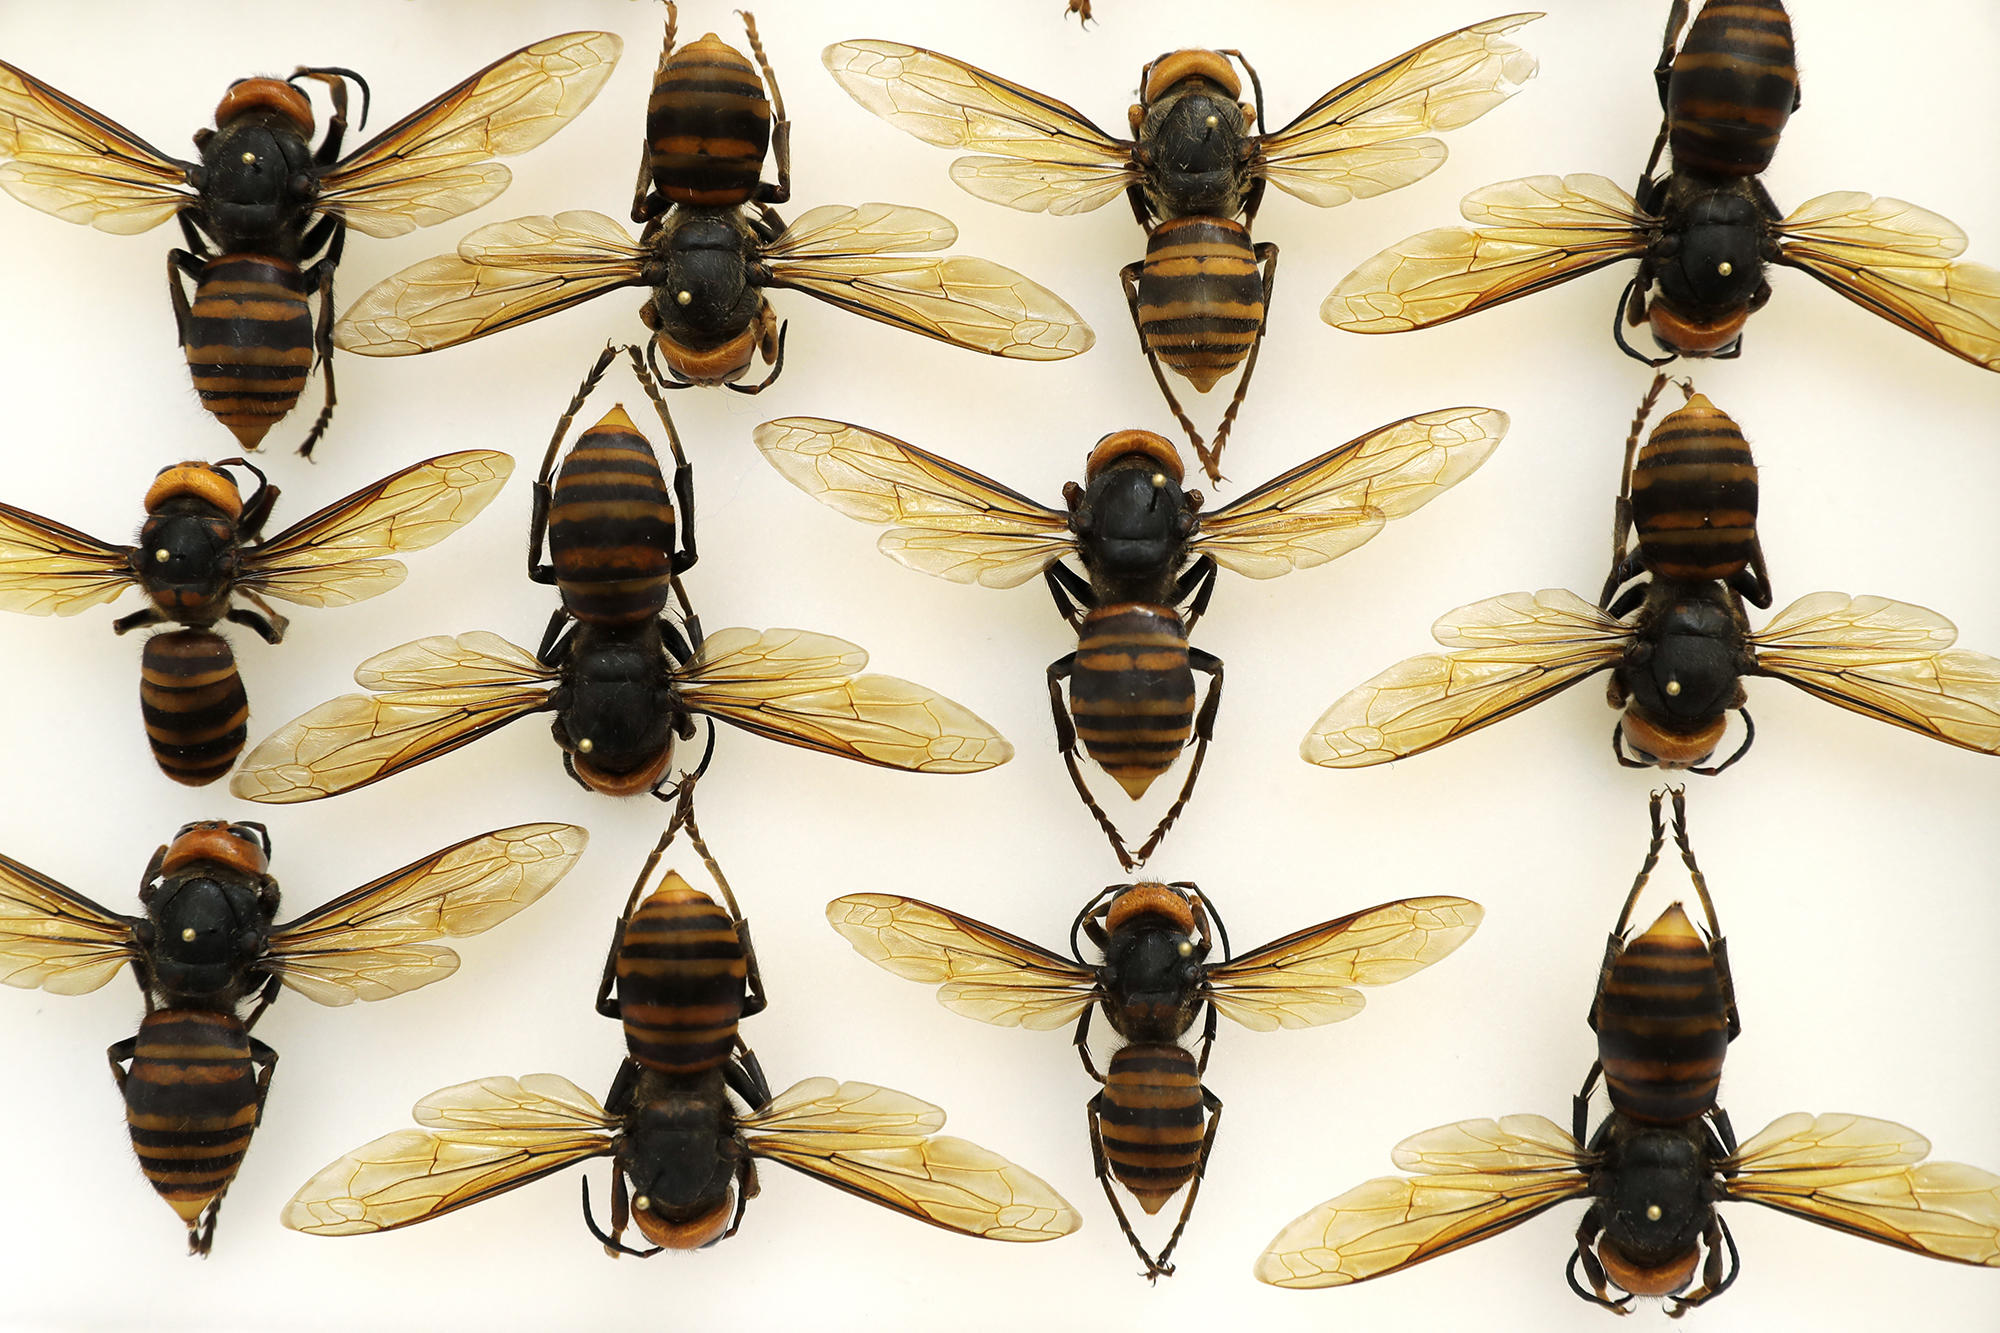 crosscut.com: When catchy names for insects sting — think 'Asian giant hornet'